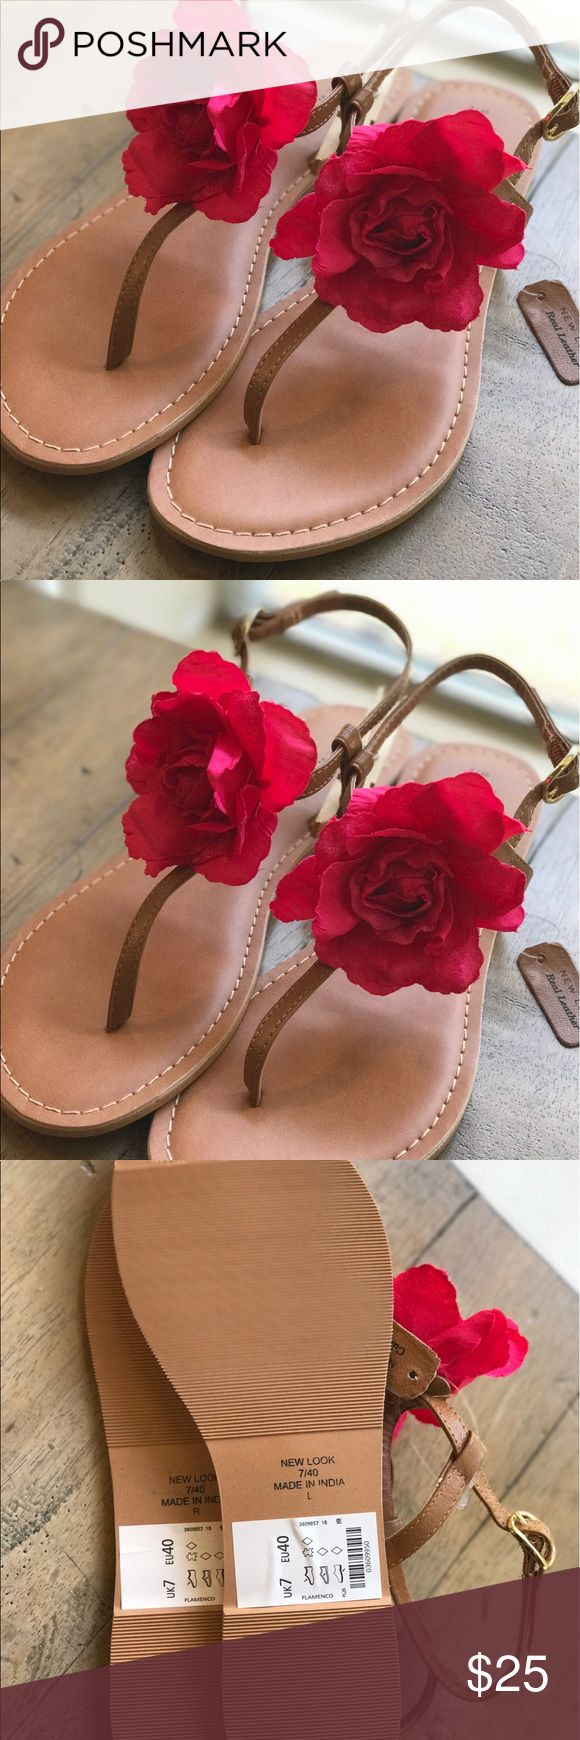 NWT Tan Leather Sandal Pink Flower Sandal Size 7 NWT Tan Leather Sandal Pink Flower Sandal Size 7 // New With Tags // Side Buckle to Fasten Close // Brand: New Look New Look Shoes Sandals